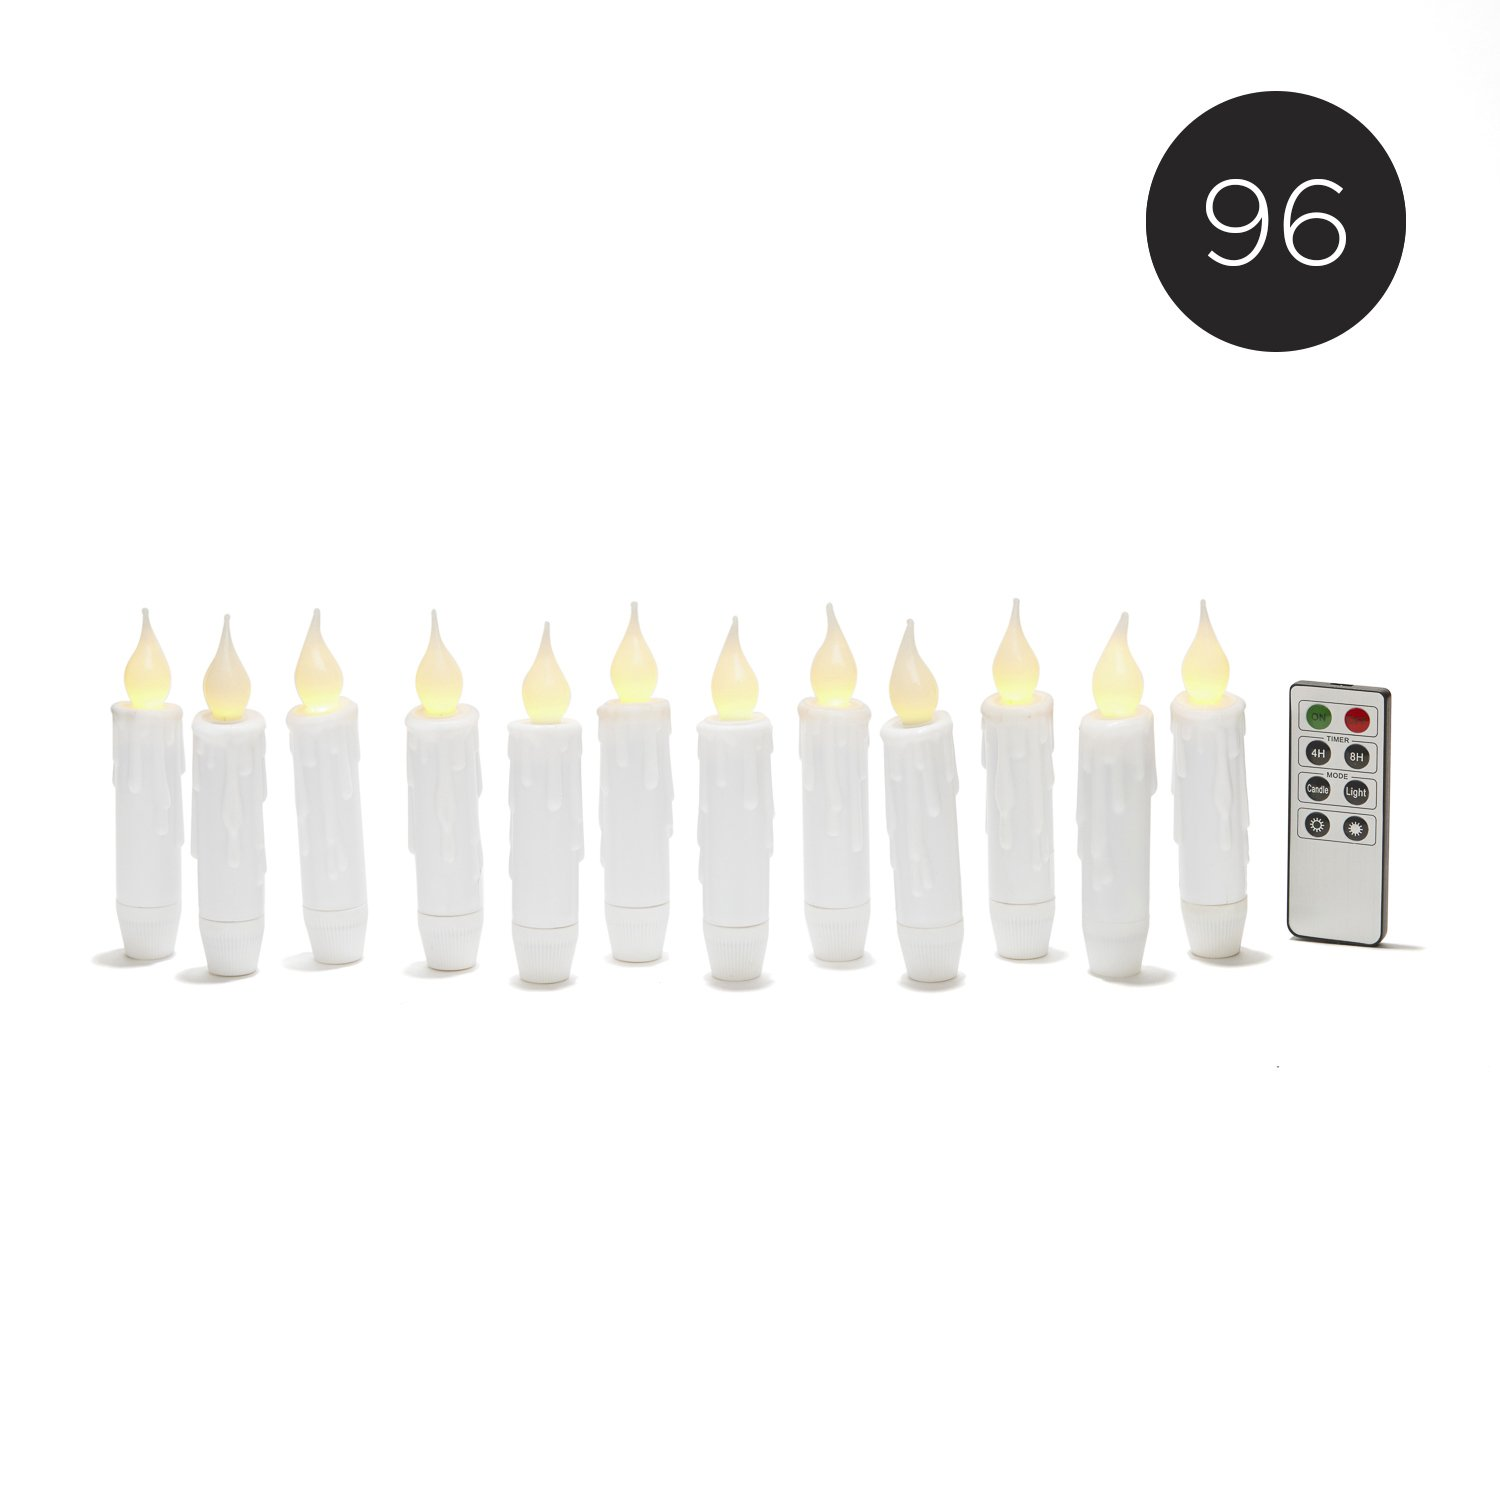 5'' Mini White Flameless Taper Candles with Remote | BULK VALUE SET | 96 Candles, Resin, Drip Detail, Indoor and Outdoor Use, Timer Option by LampLust